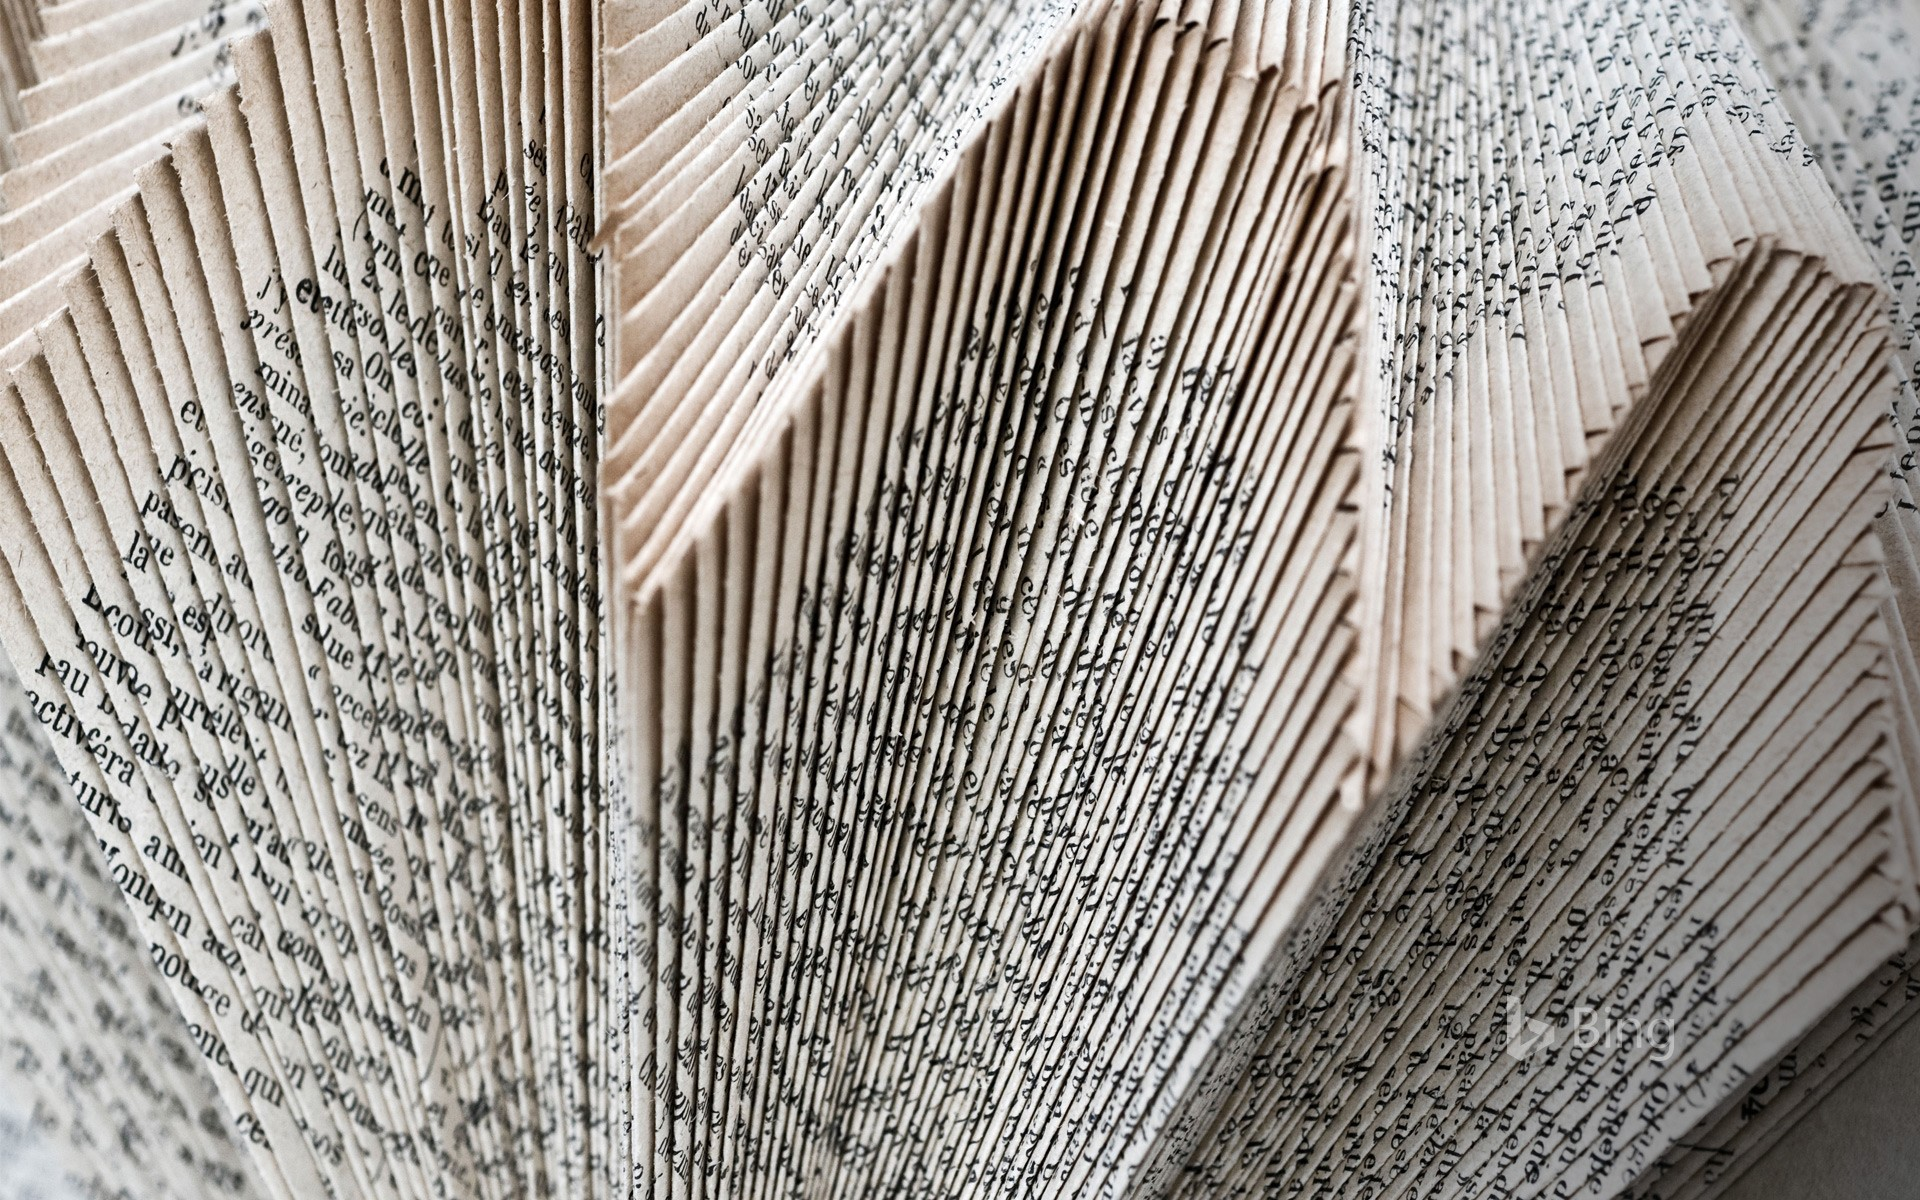 Decorative structure of folded book pages, Angles-sur-l'Anglin, Vienne